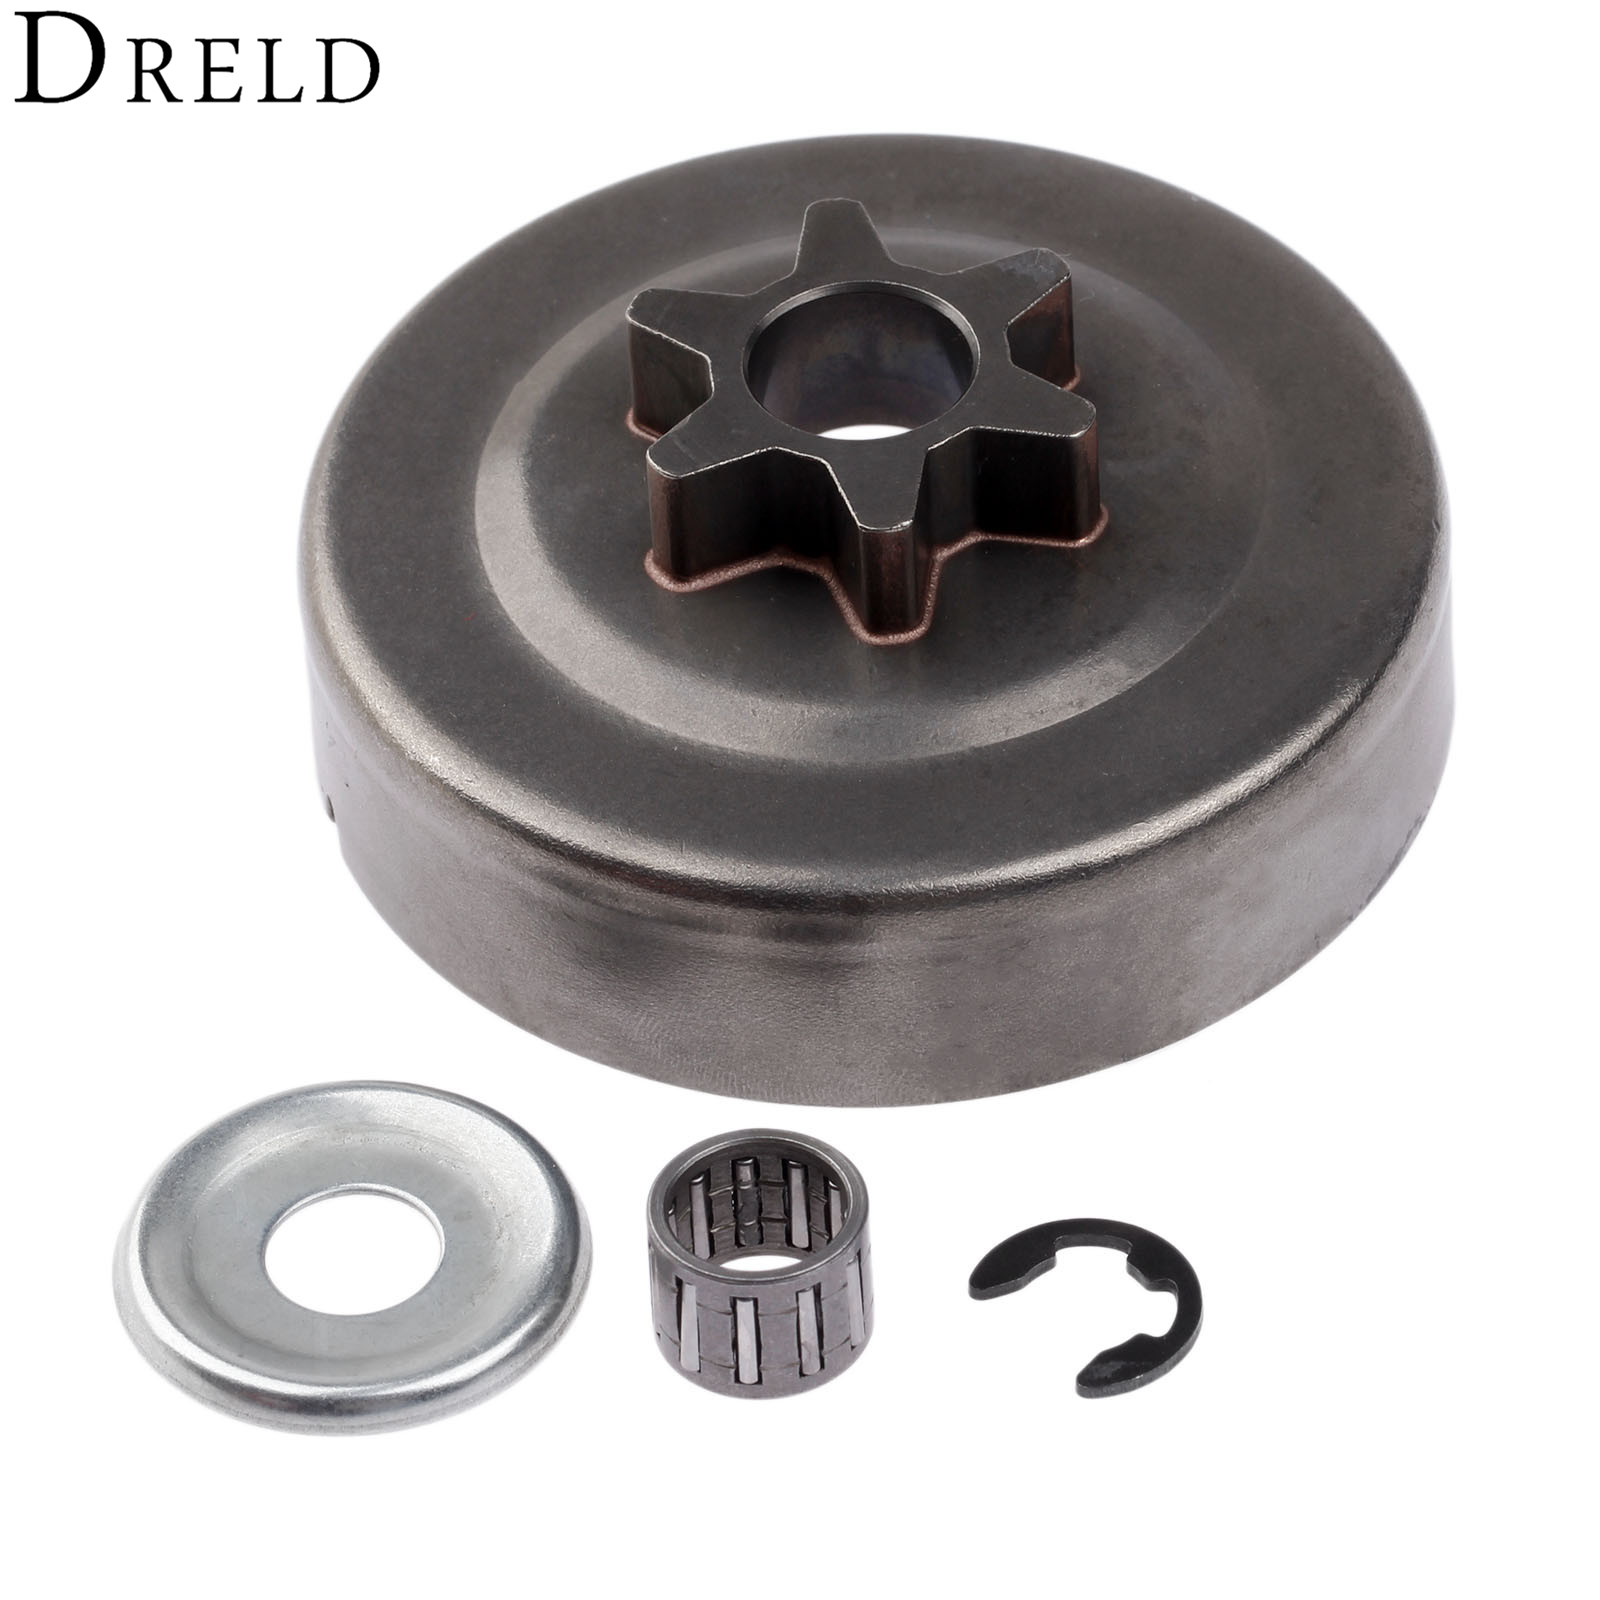 DRELD 3/8 6T Clutch Drum Sprocket Washer E-Clip Kit For STIHL Chainsaw 017 018 021 023 025 MS170 MS180 MS210 MS230 MS250 1123 chainsaw starter handle grip pawl set with spring washer fit stihl 017 018 021 023 025 ms180 ms250 parts